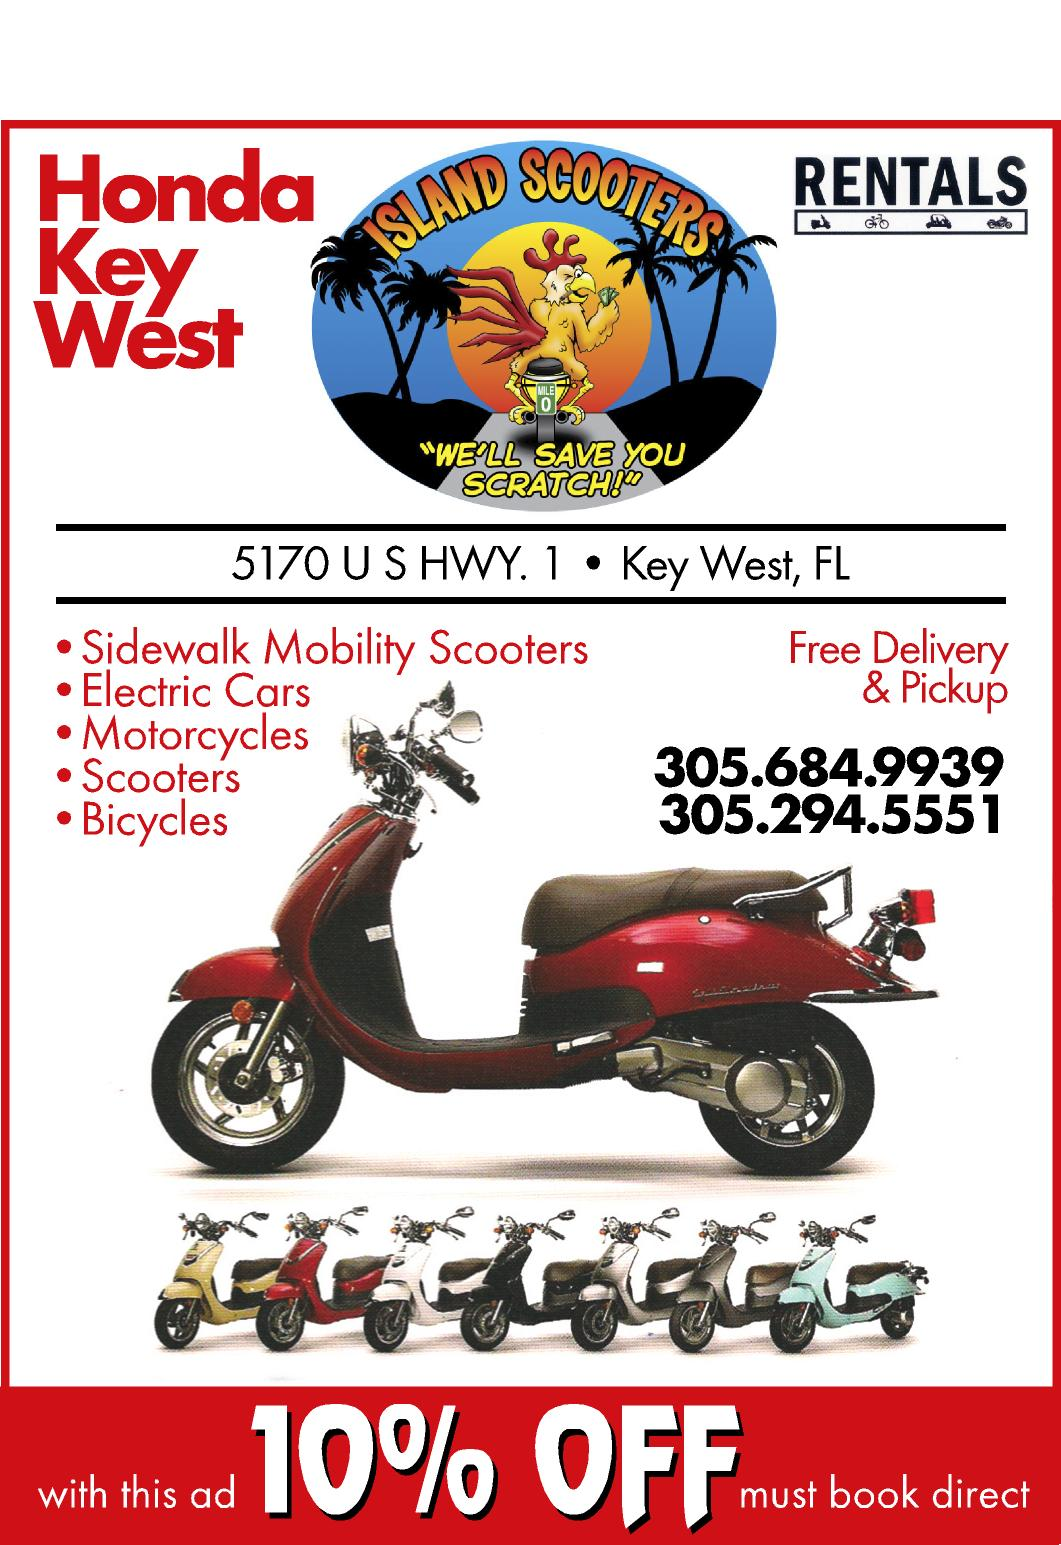 Island Scooter / Honda Key West